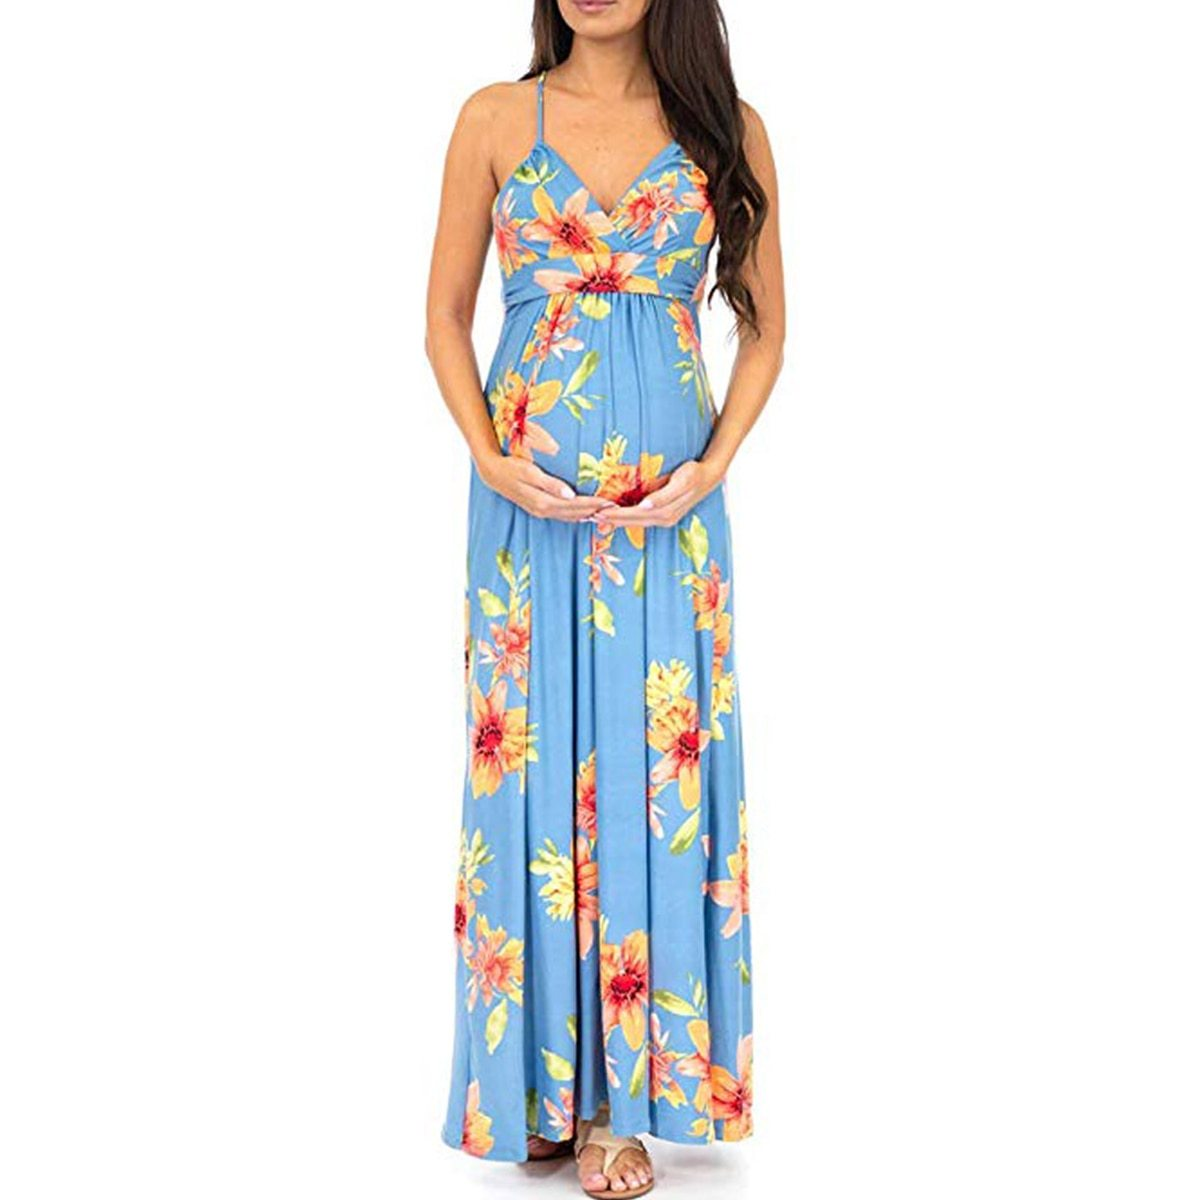 Maternity's Dress V Neck Floral Print Sleeveless Fashion Slip Dress image 3